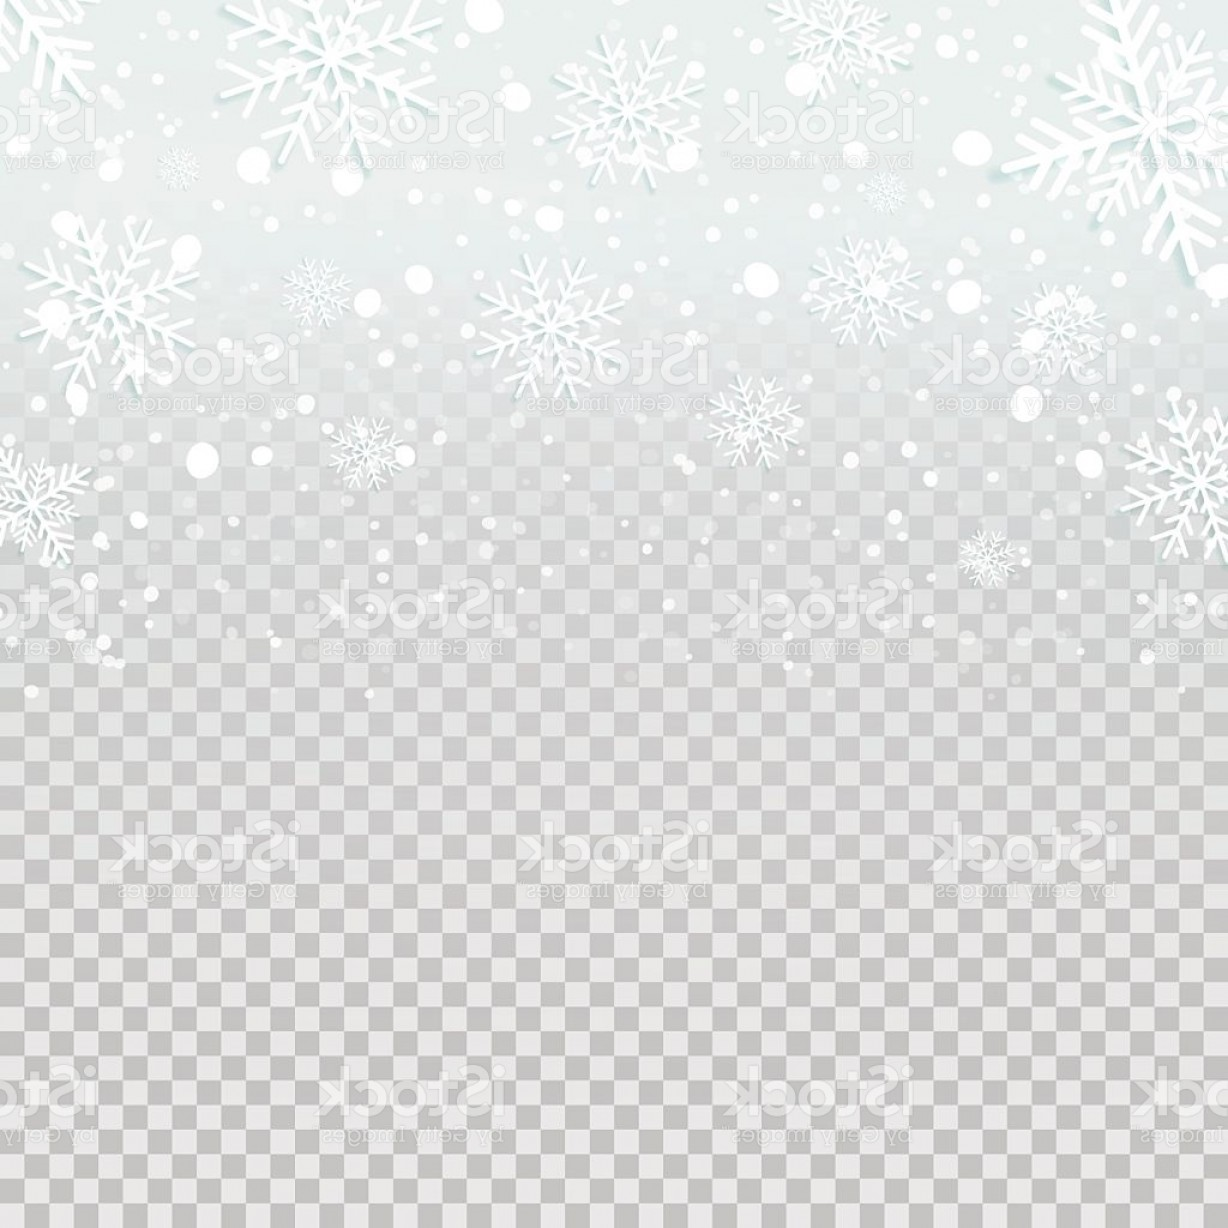 Snow Falling Vector Free: Falling Snow Backdrop On Transparent Background Gm